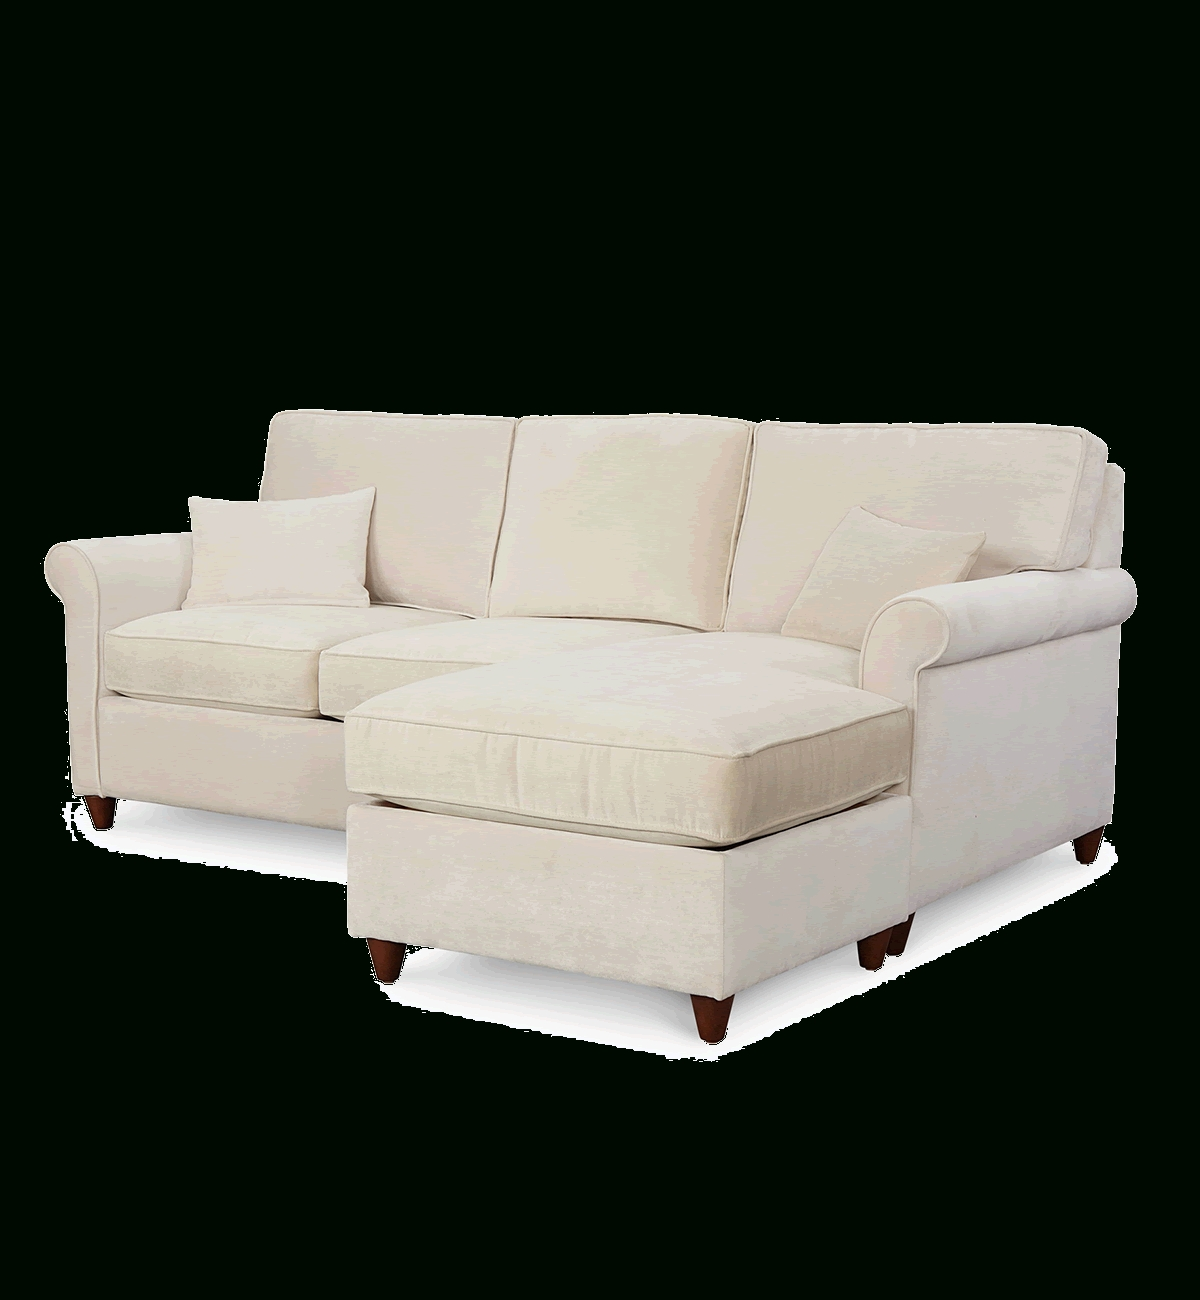 Latest Macys Sectional Sofas Within Sectional Sofas Couches And Sofas – Macy's (View 8 of 15)